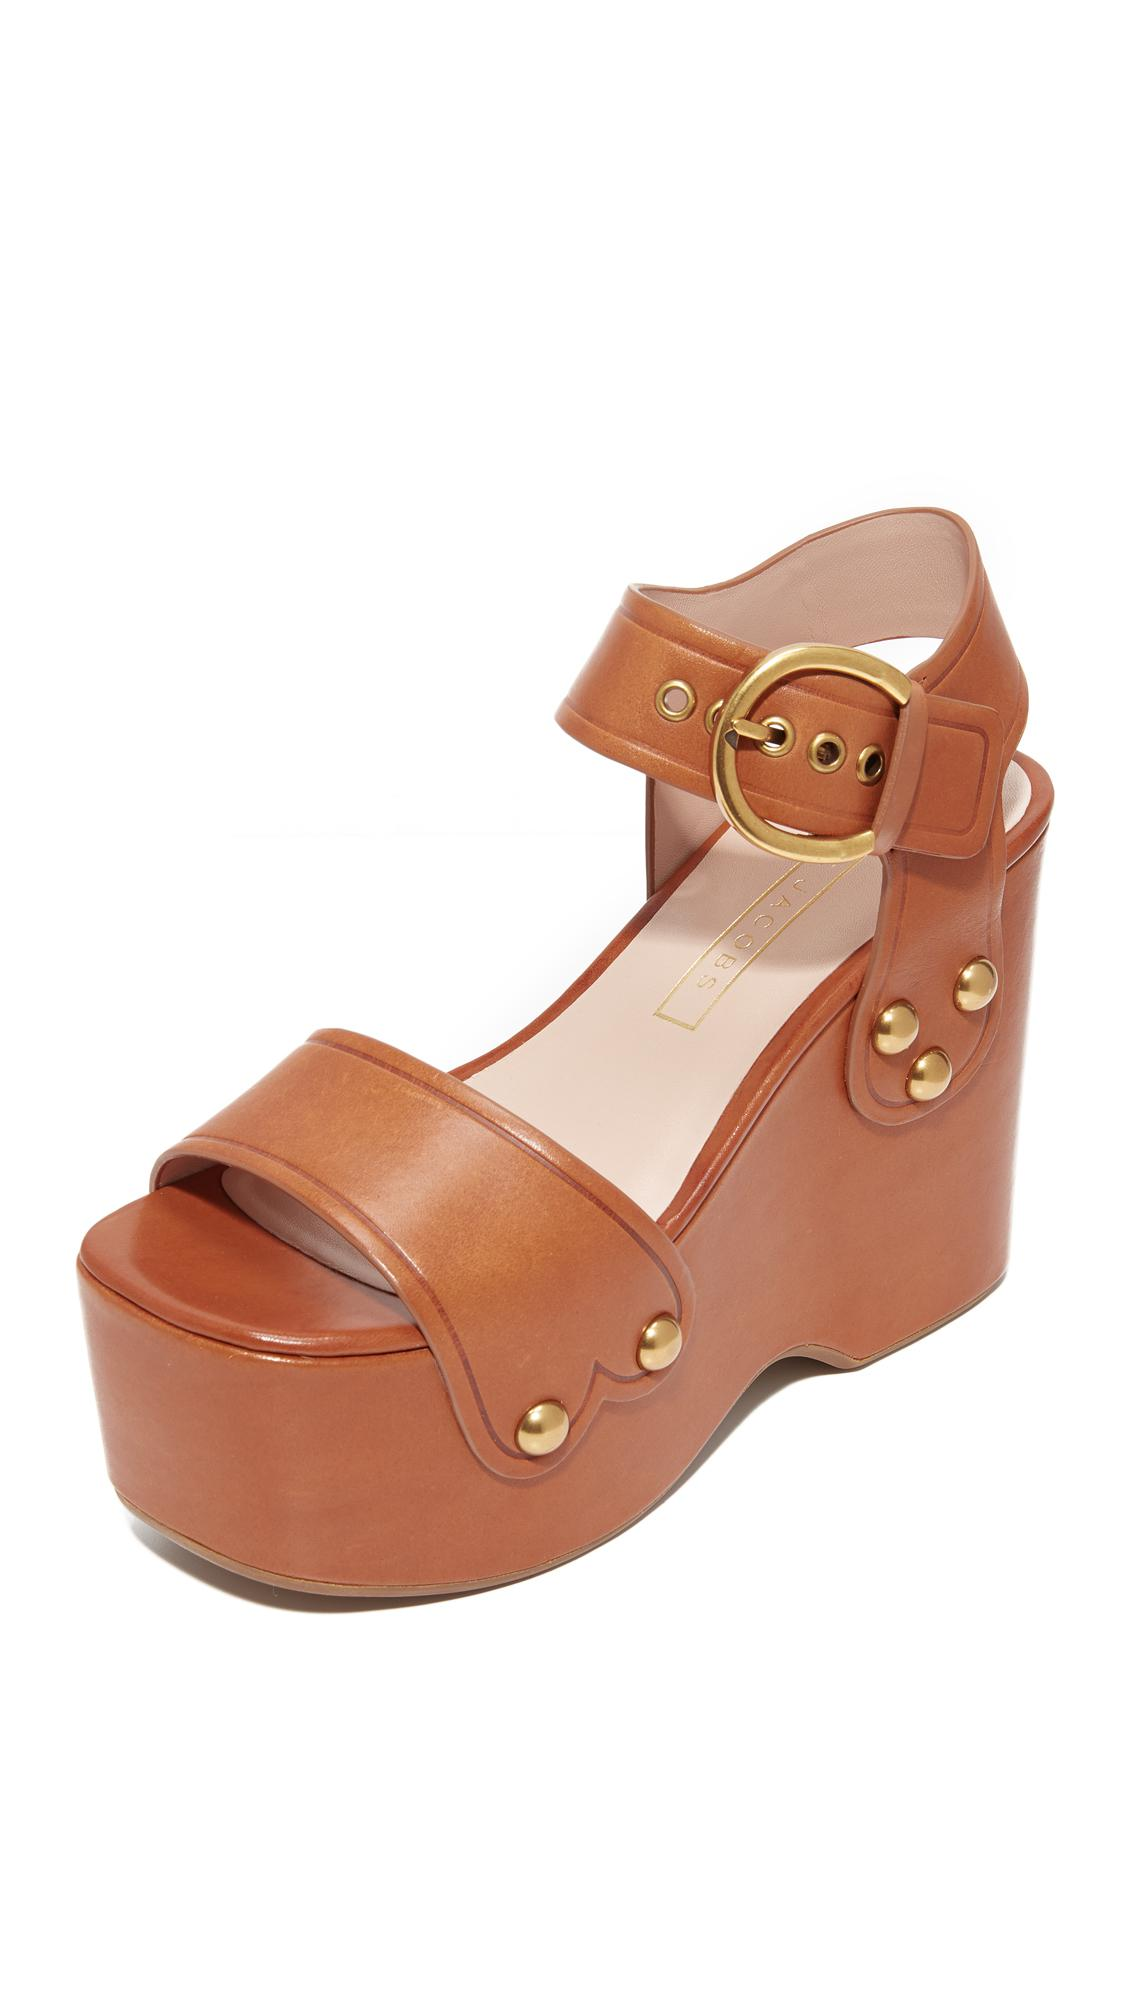 f8c52fc0abc7 Lyst - Marc Jacobs Lana Wedge Sandals in Brown